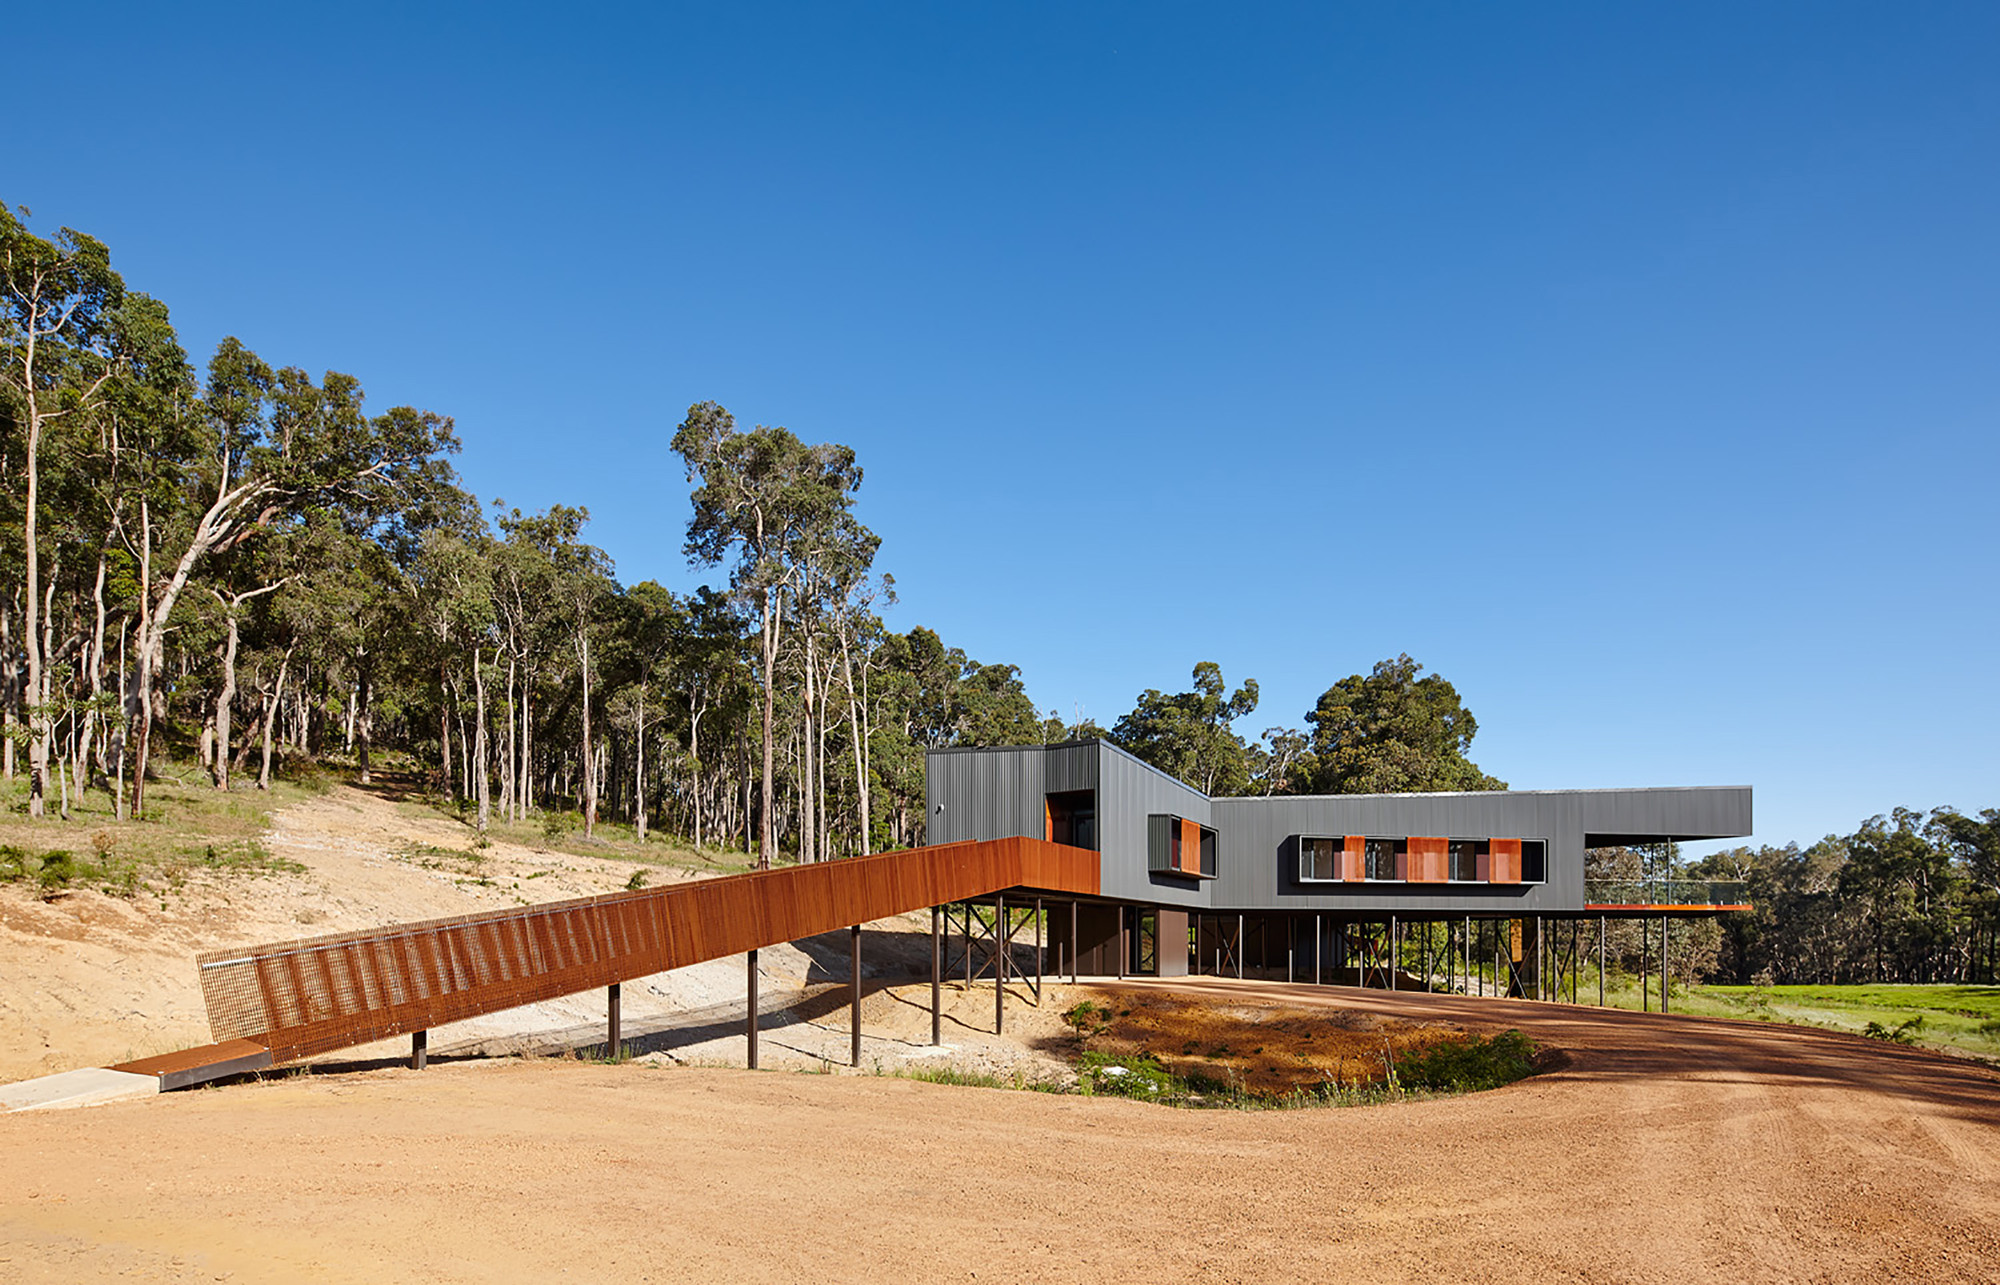 Nannup Holiday House / Iredale Pedersen Hook Architects, © Peter Bennetts